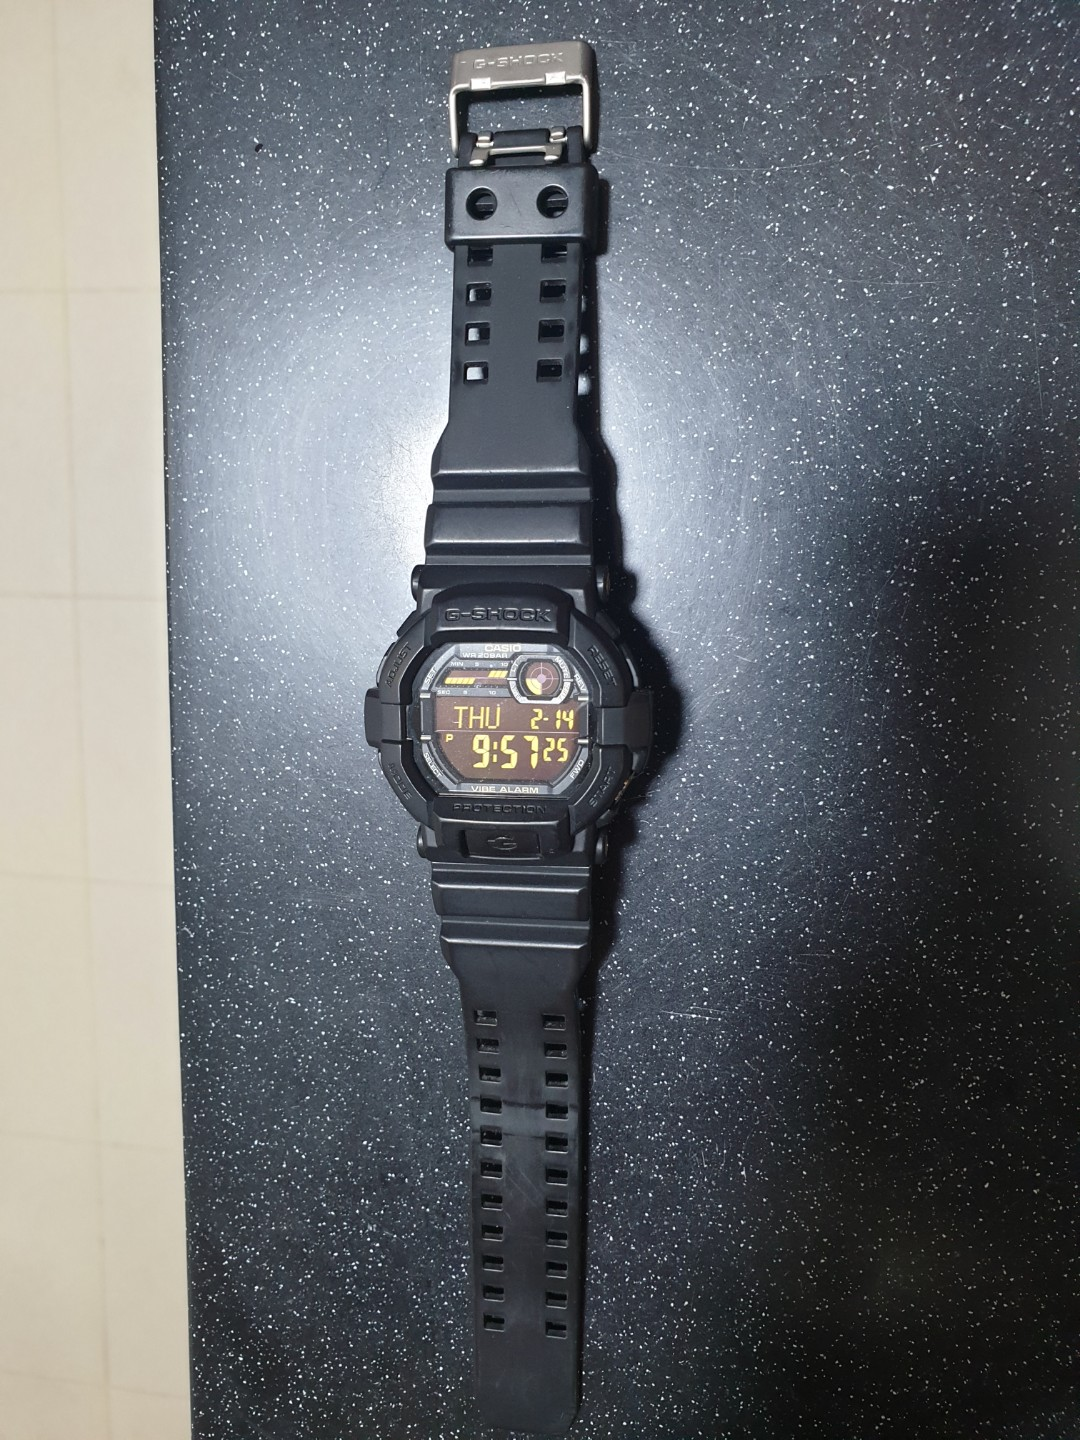 286f2b442 G Shock, Men's Fashion, Watches on Carousell